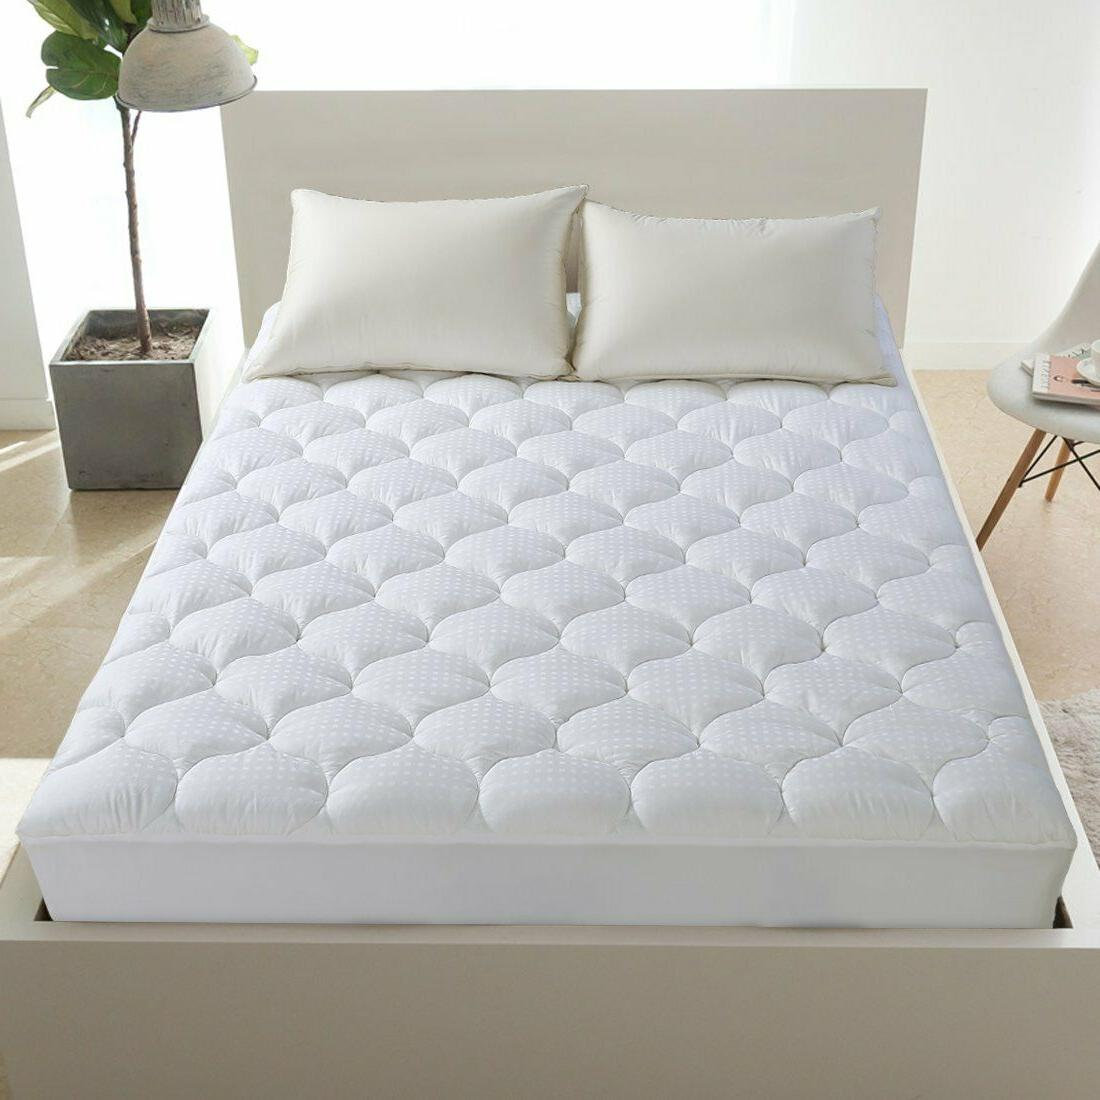 Mattress Pad Cooling Fitted Cotton Soft Pillow Top TOWN